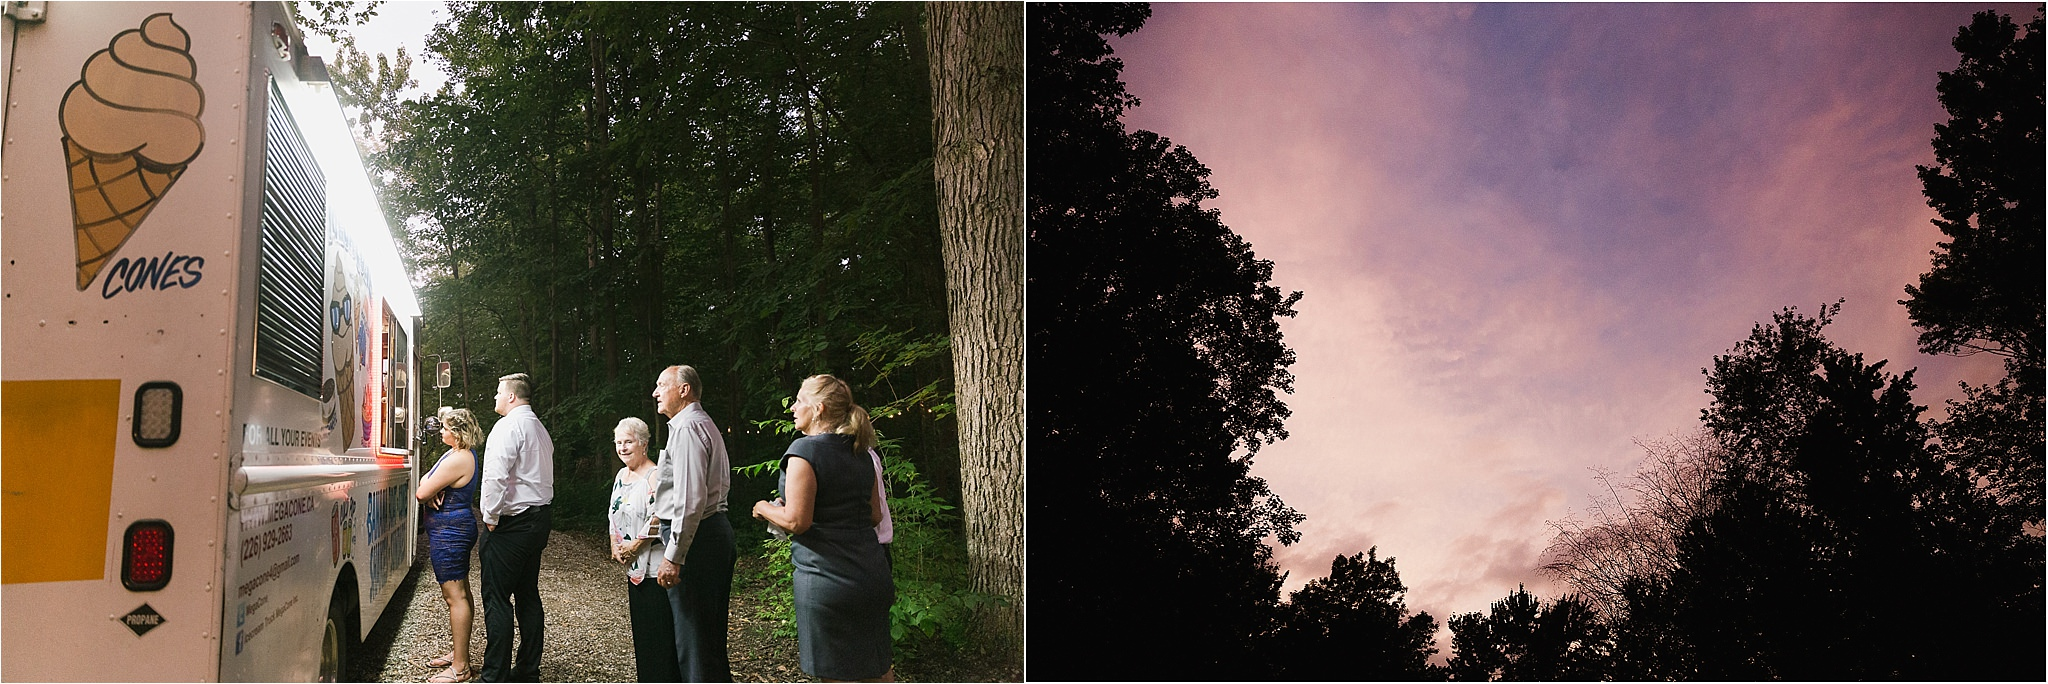 Sonia V Photography, The Clearing reception wedding venue, outdoor tent dinner cotton candy sky and ice cream truck for dessert